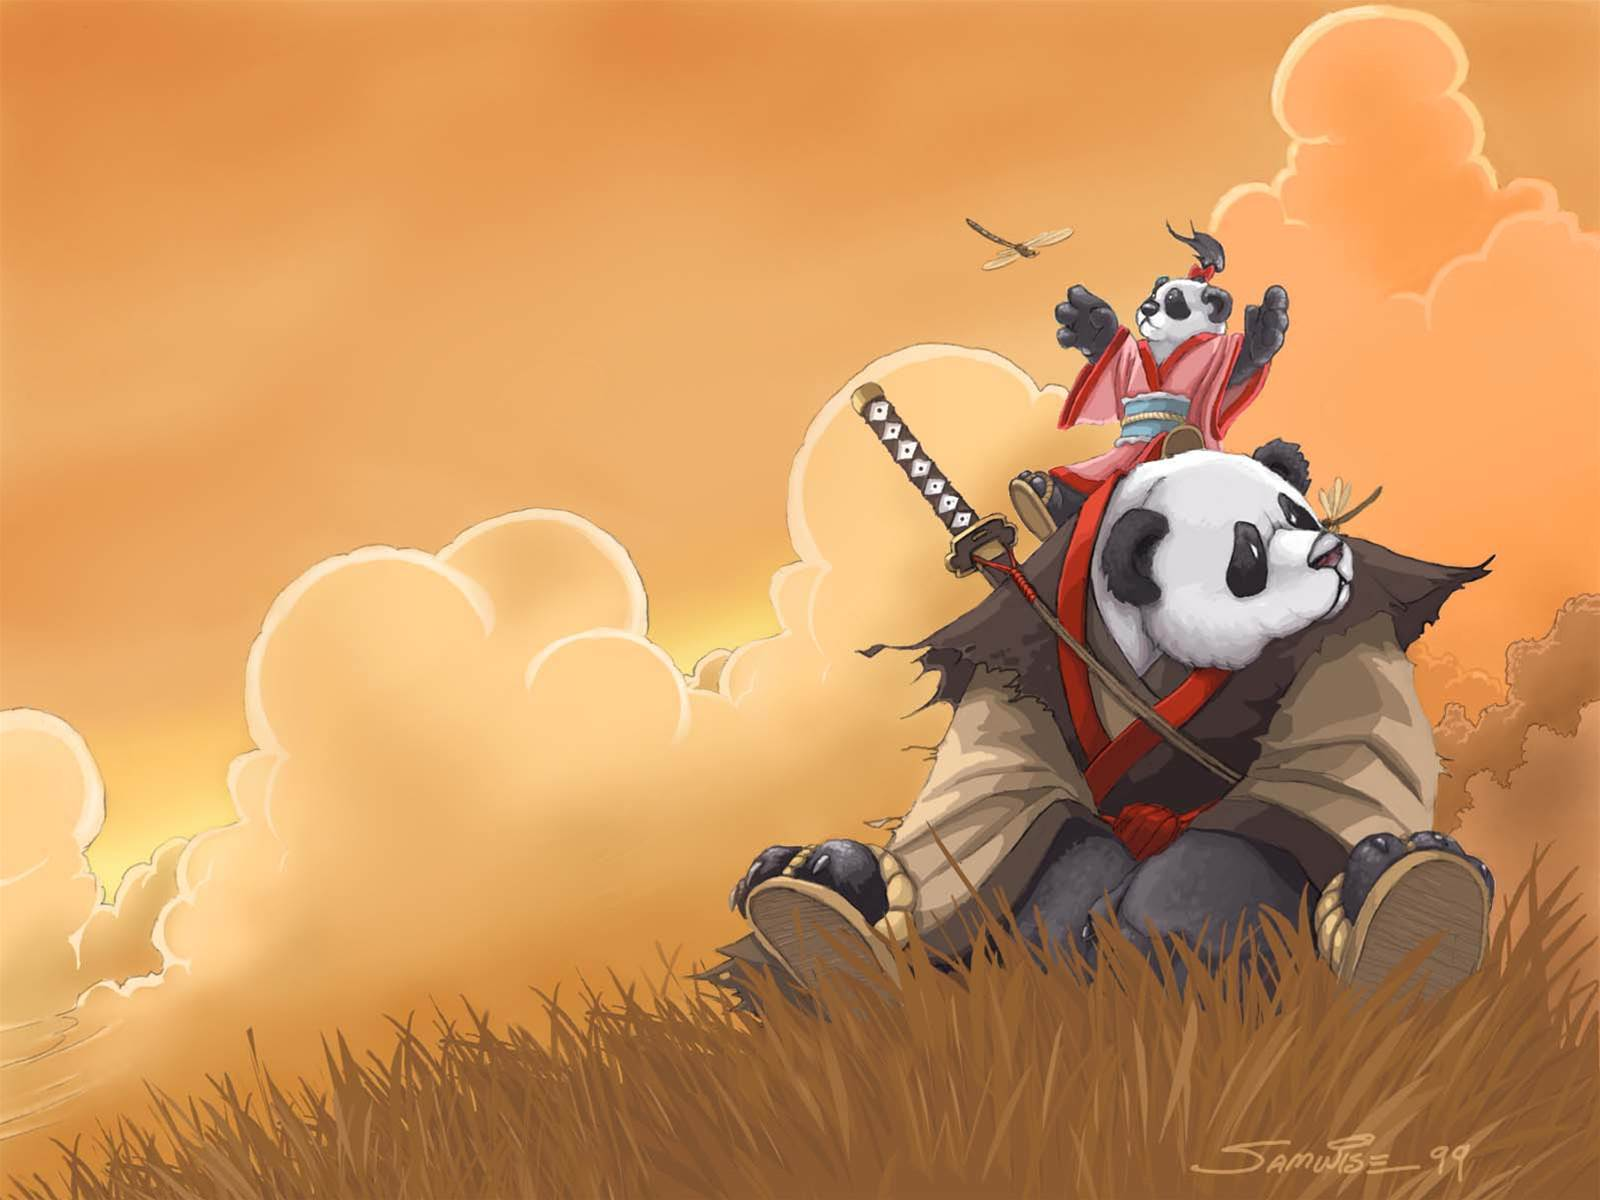 Mists of Pandaria - we were right!